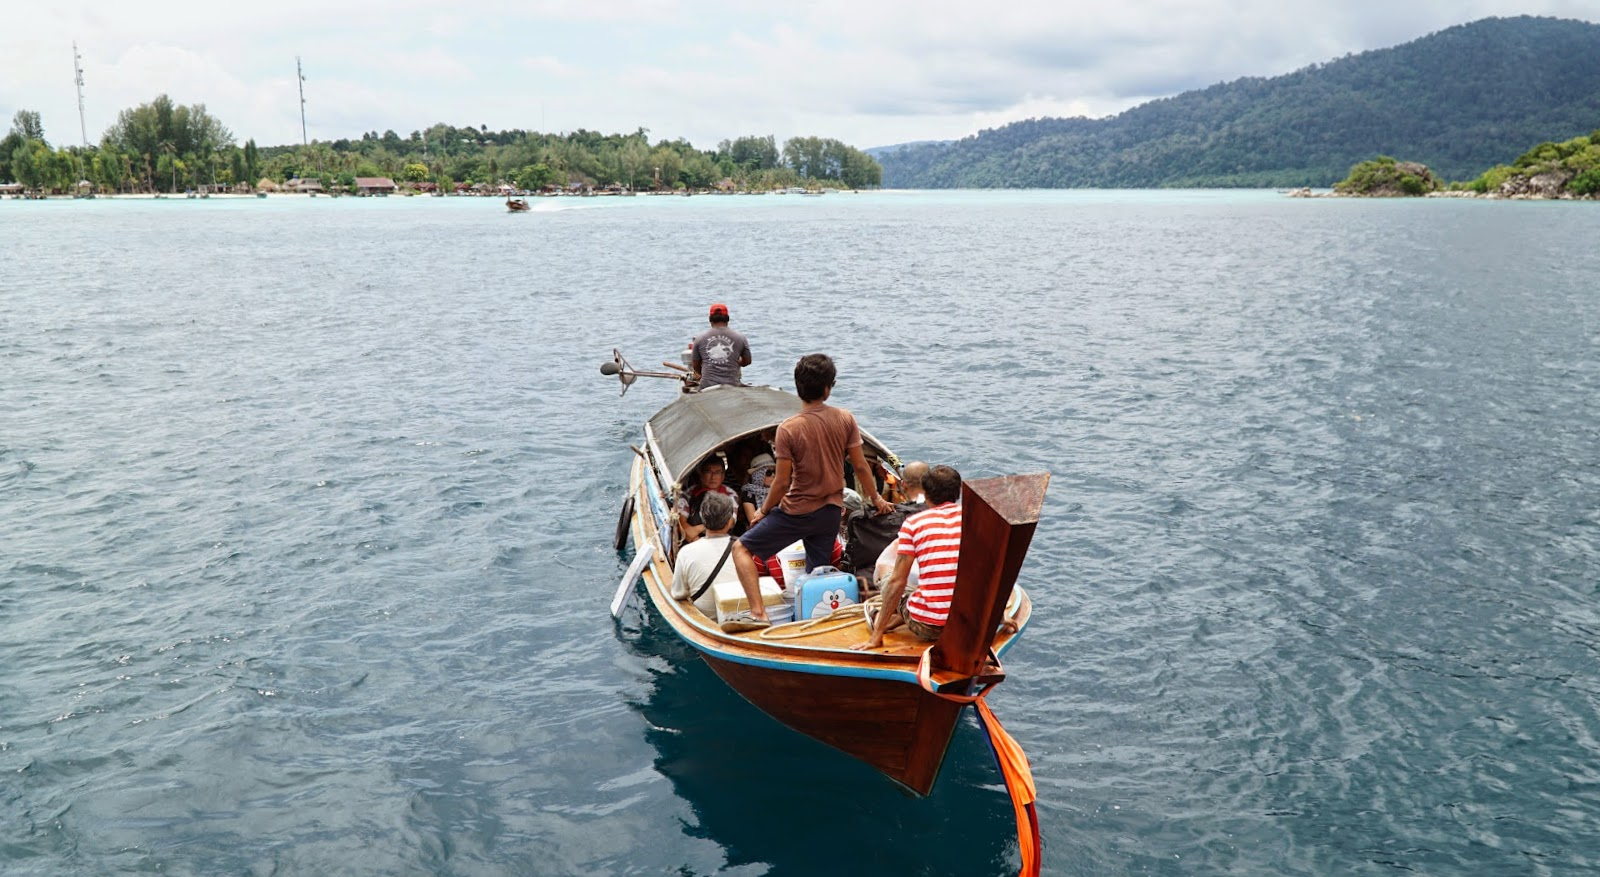 Taking the longtail boat to shore